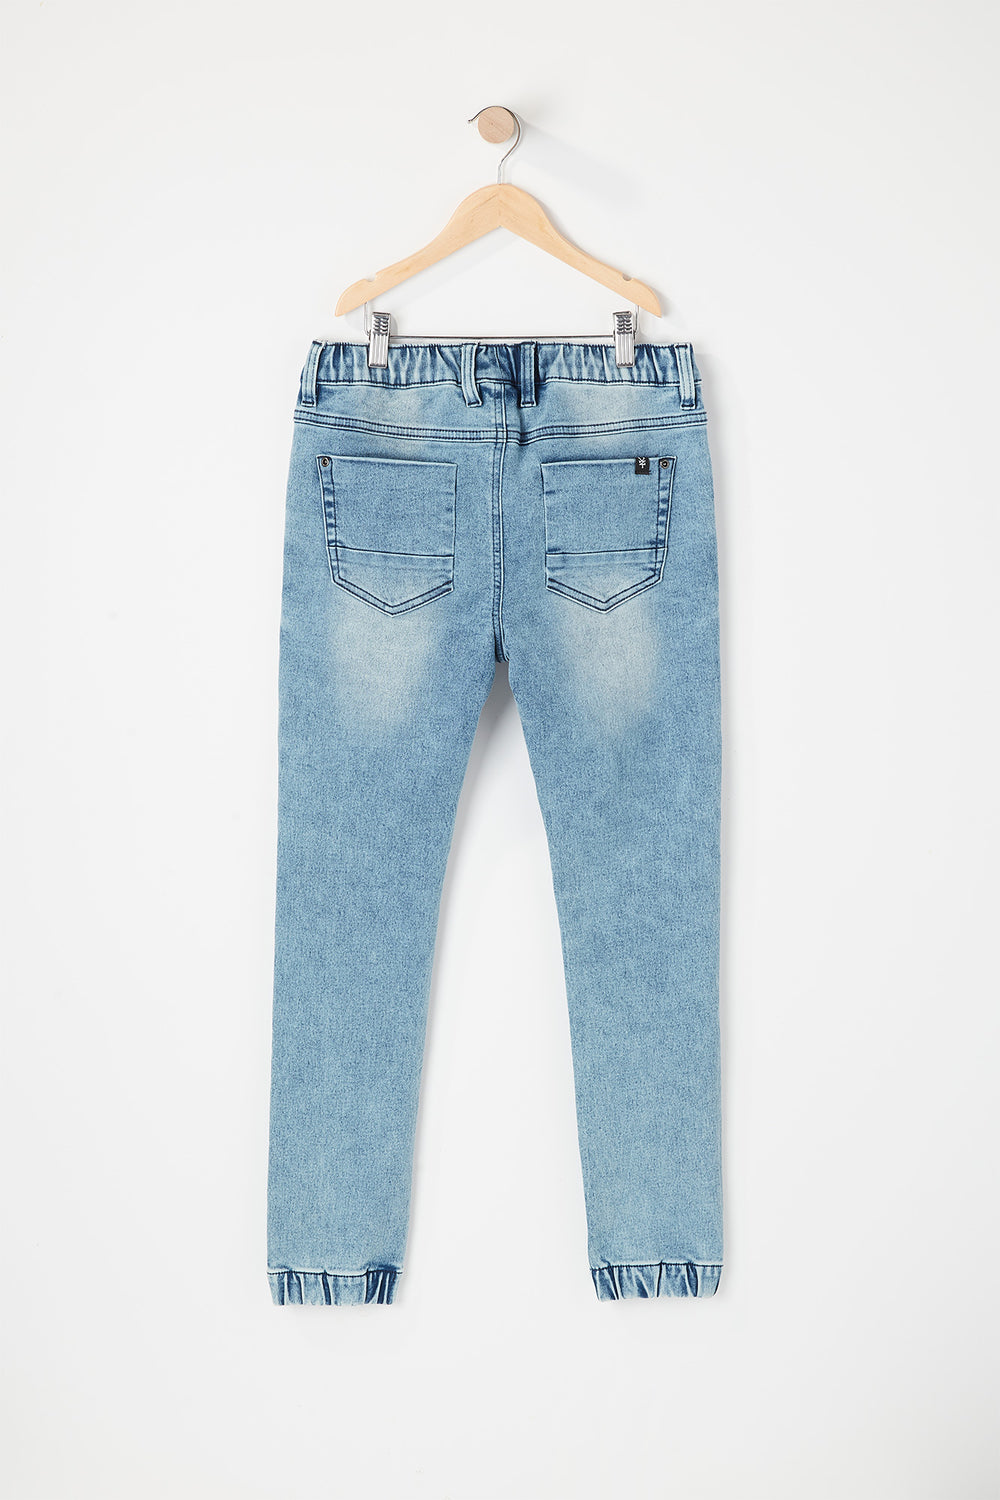 Zoo York Boys 5-Pocket Denim Jogger Light Denim Blue